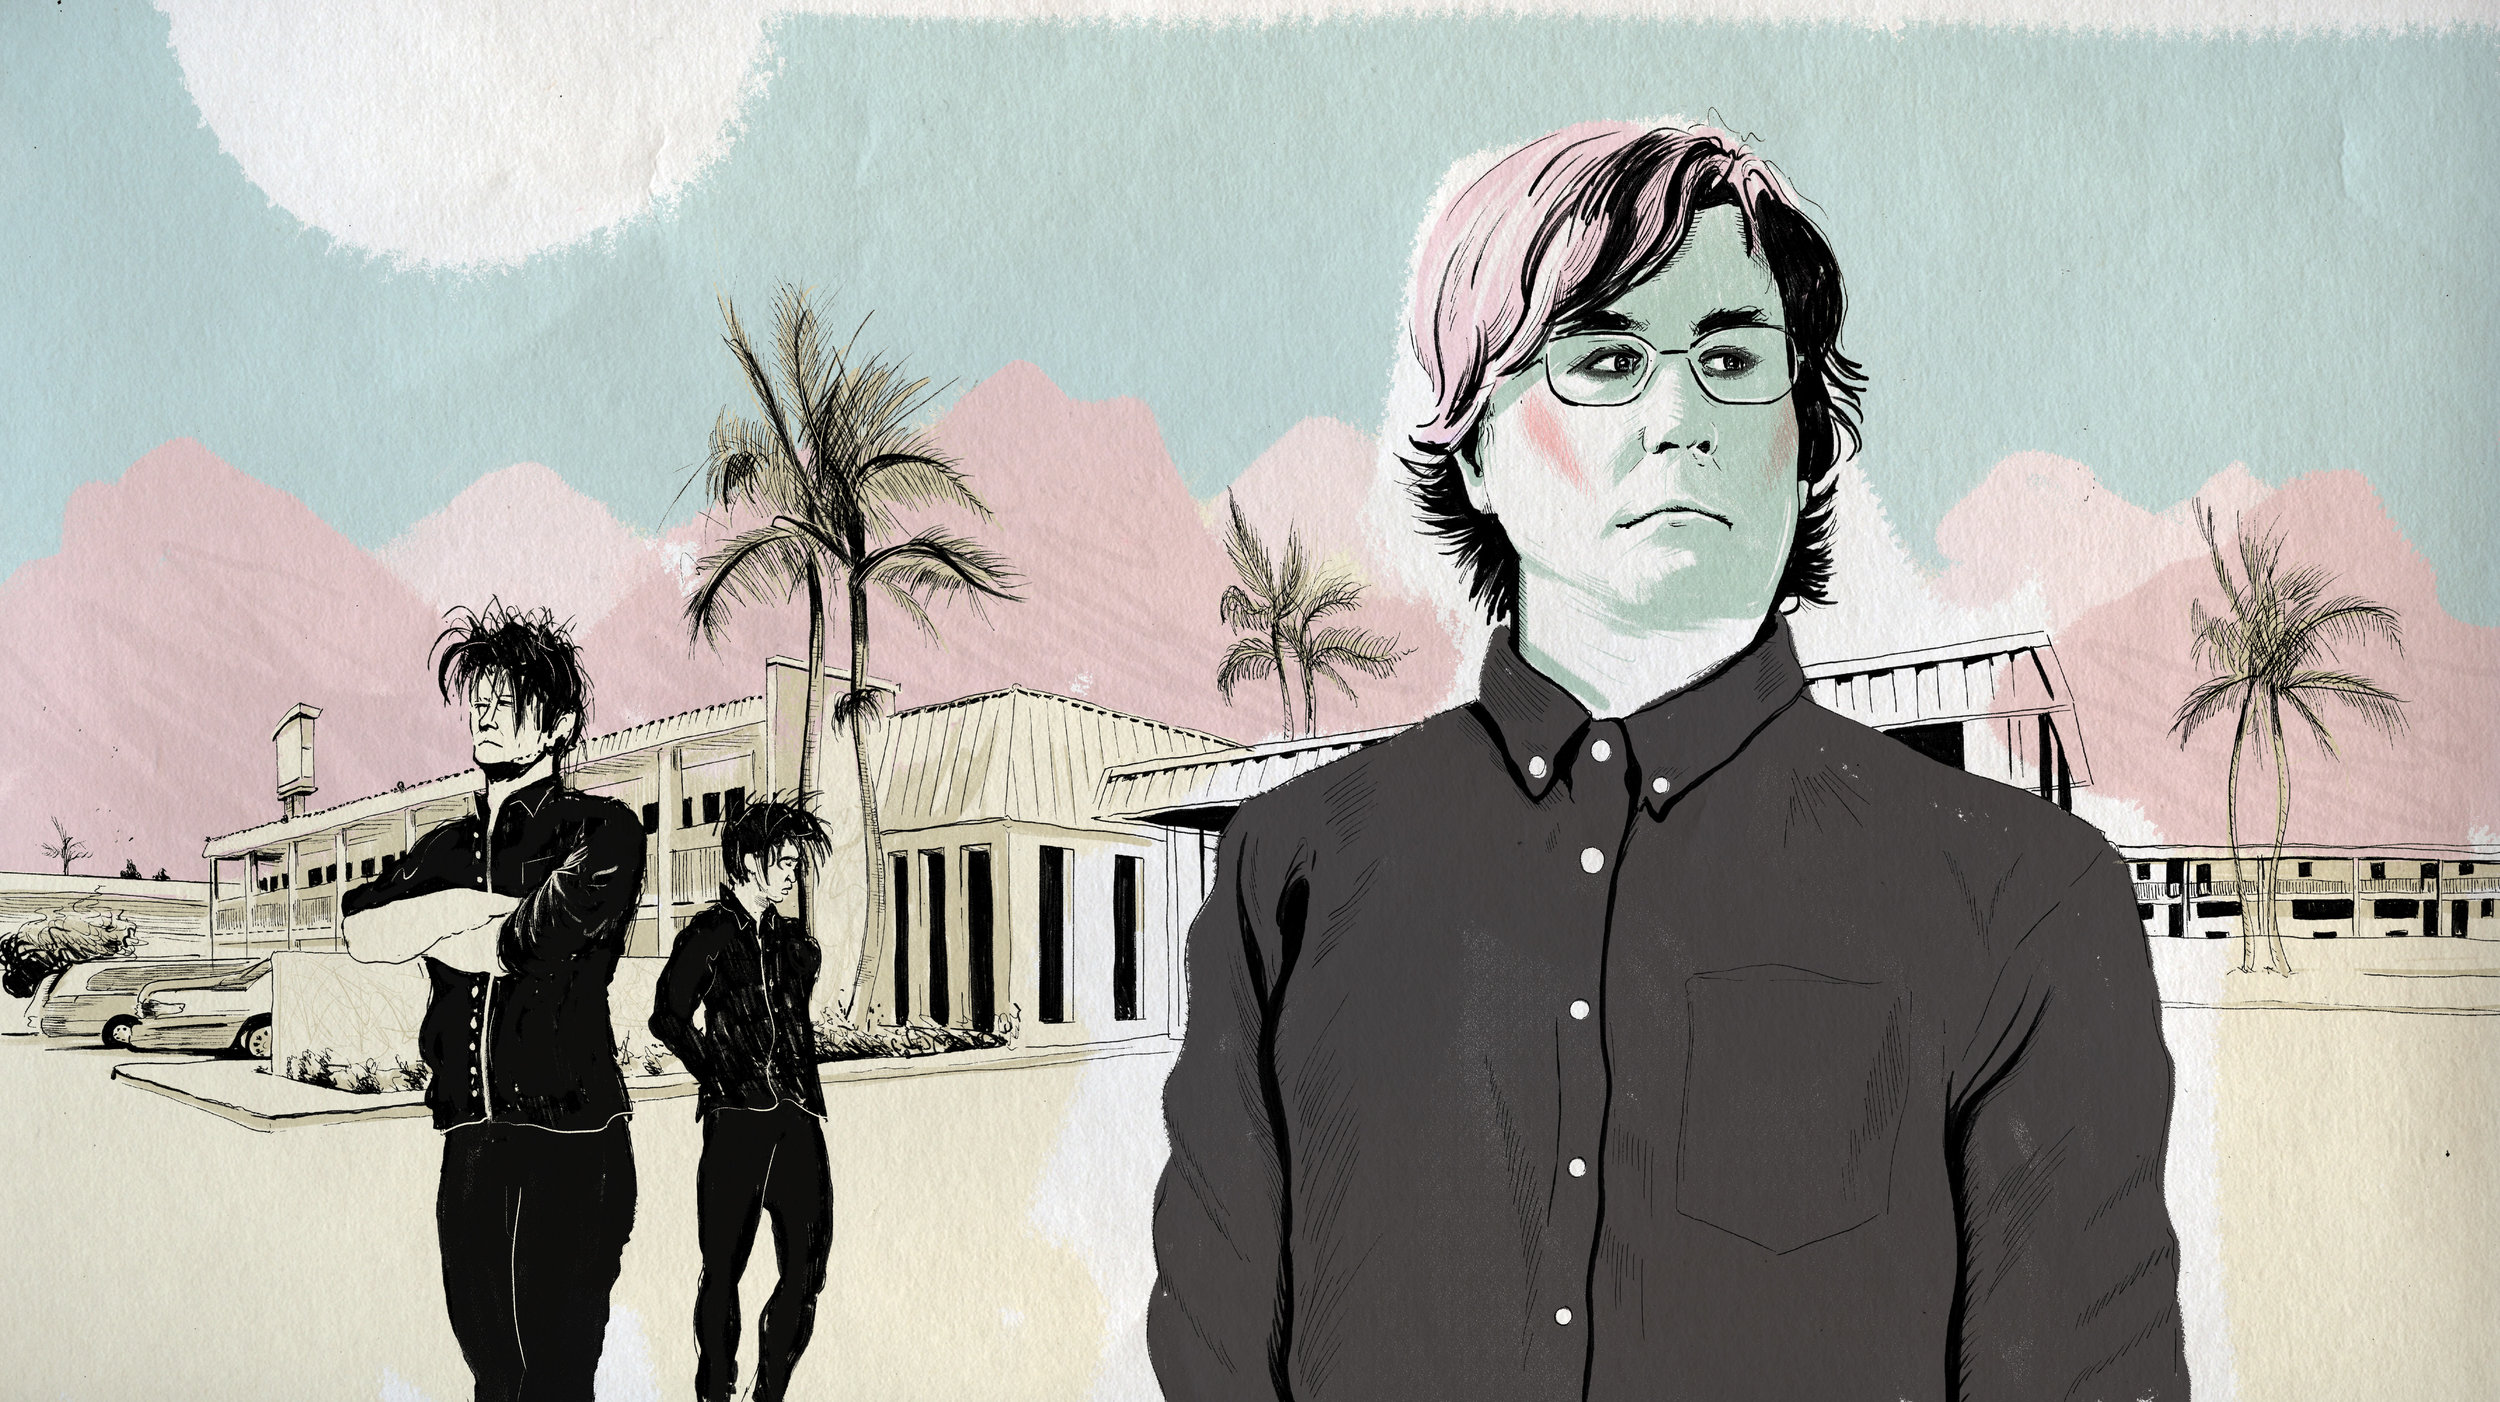 John Darnielle Lived the Teenage Goth Life I Never Did by Cam Lindsay